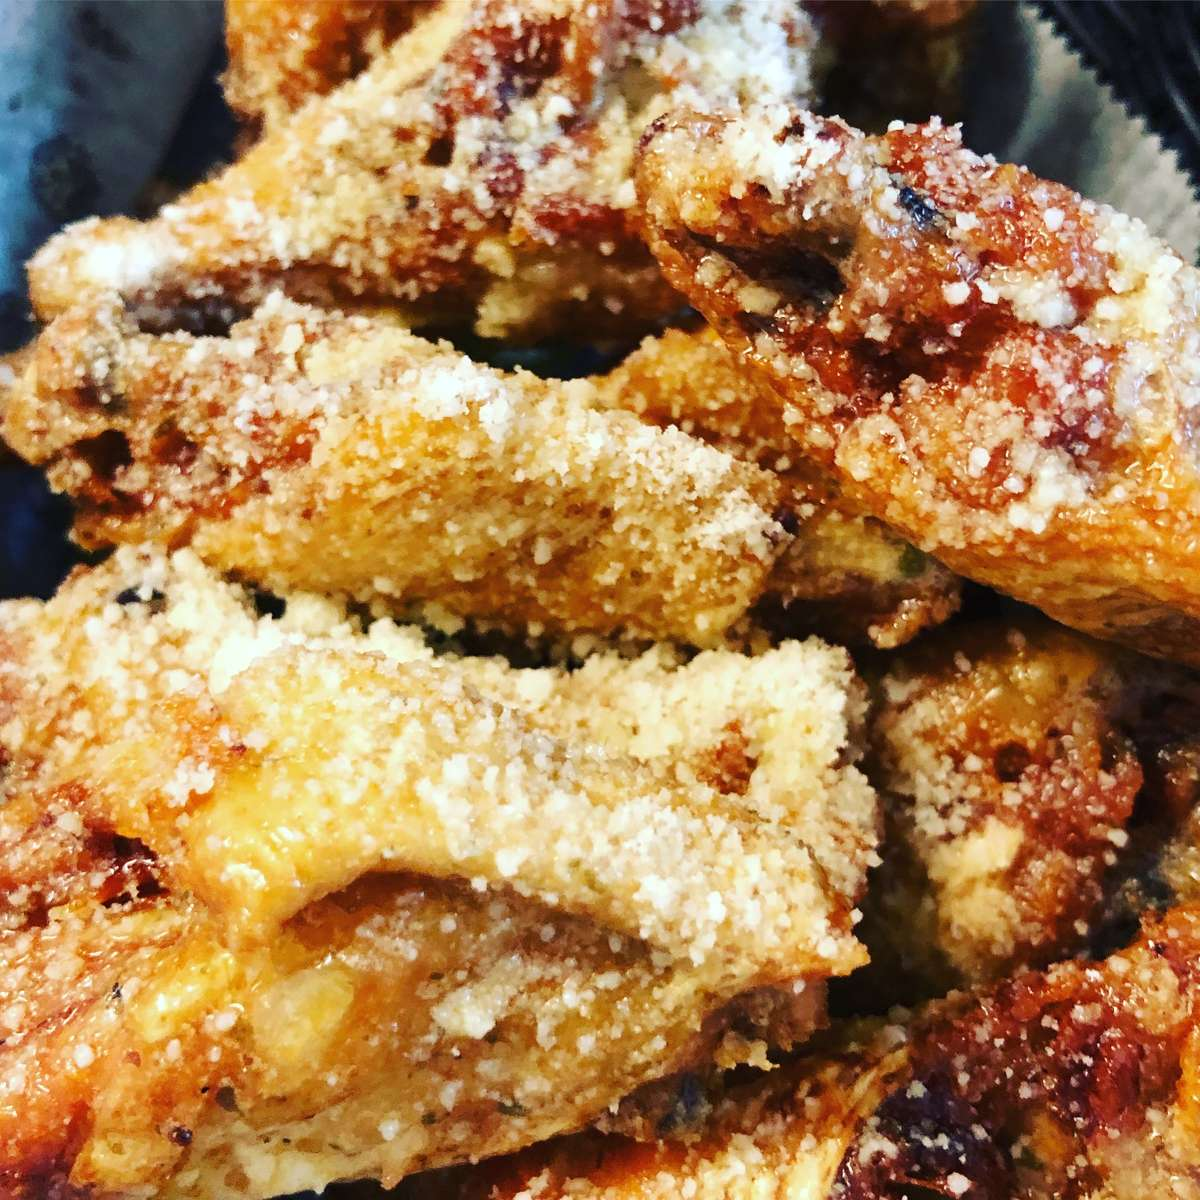 Monday - 75¢ Chicken Wings